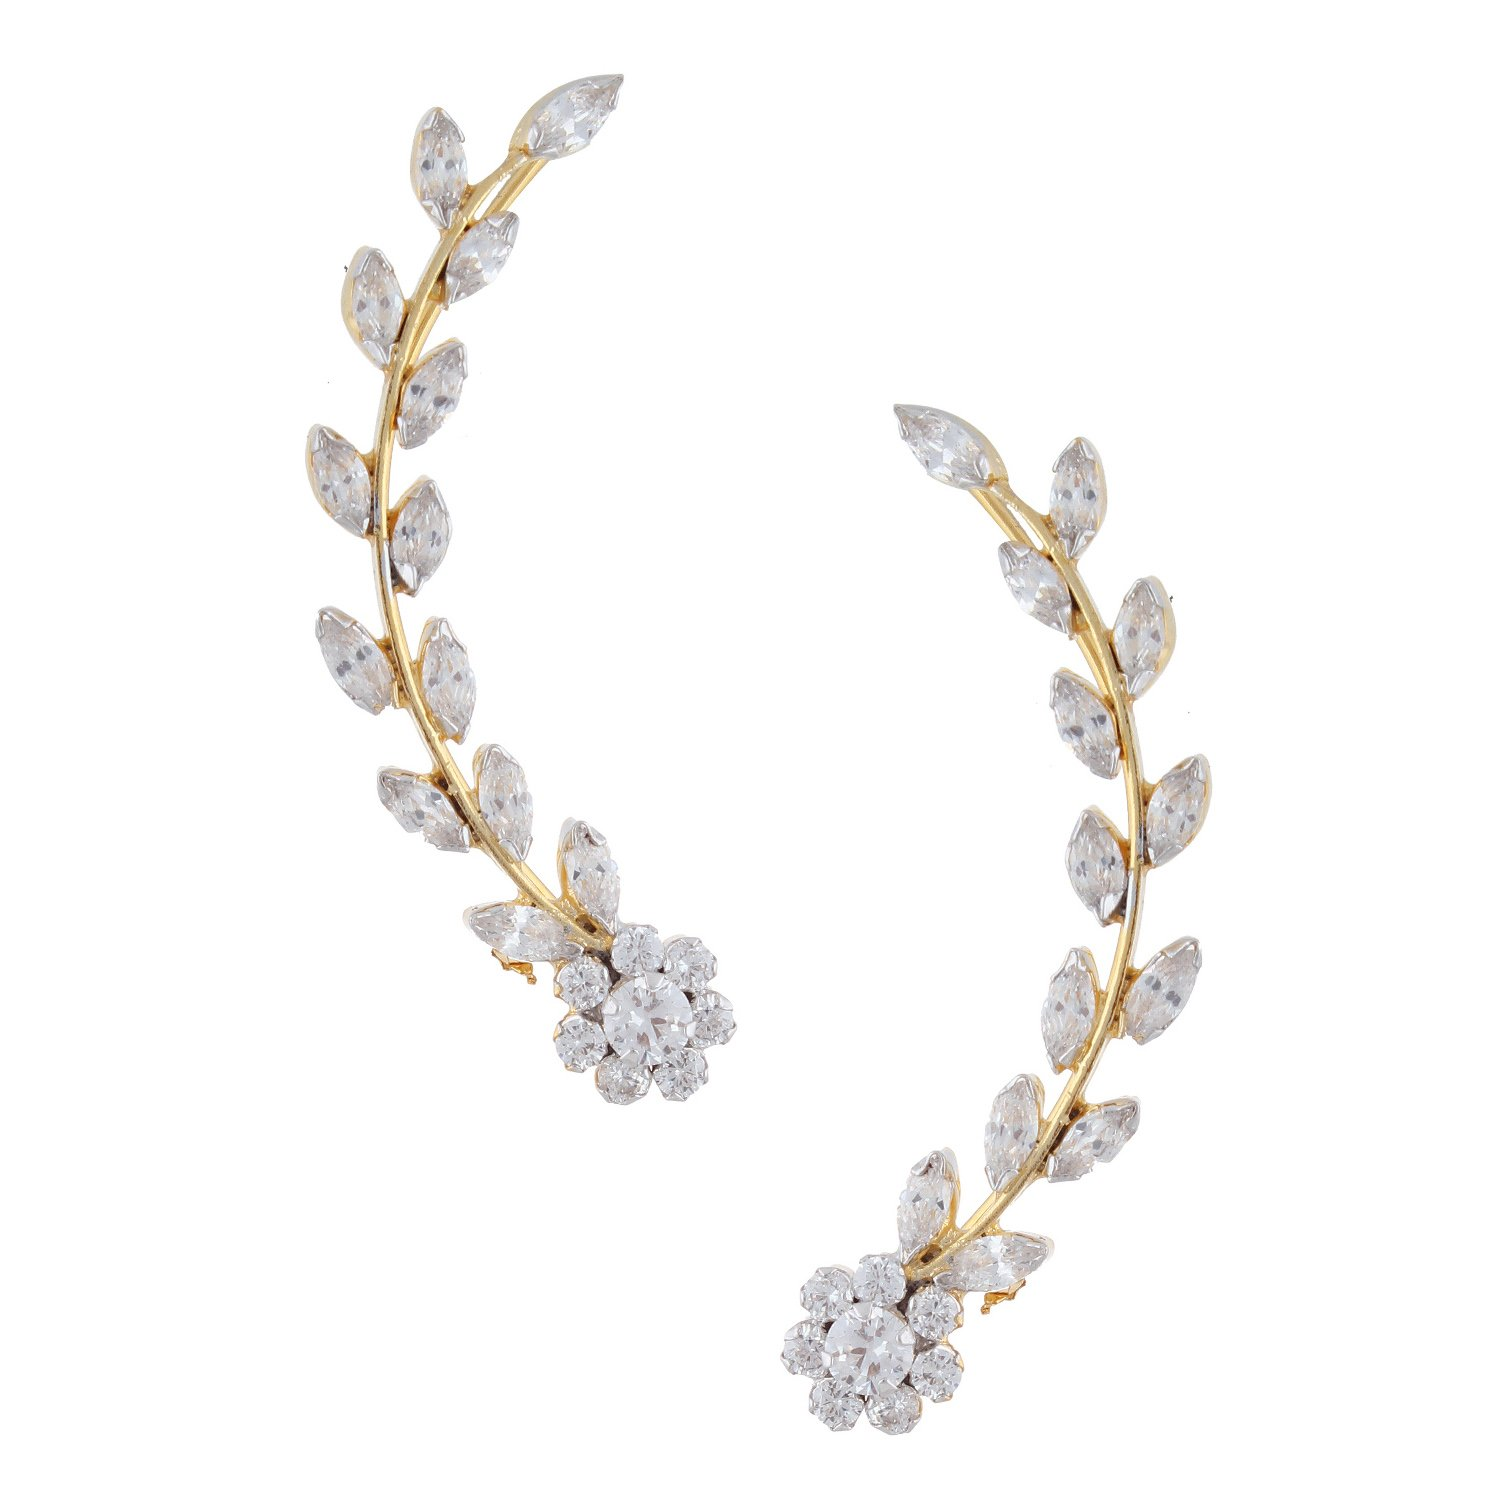 Efulgenz Ear cuffs Cubic Zirconia Flower Leaf Climber Crawler Cartilage Clip on Cuff Wrap Earrings